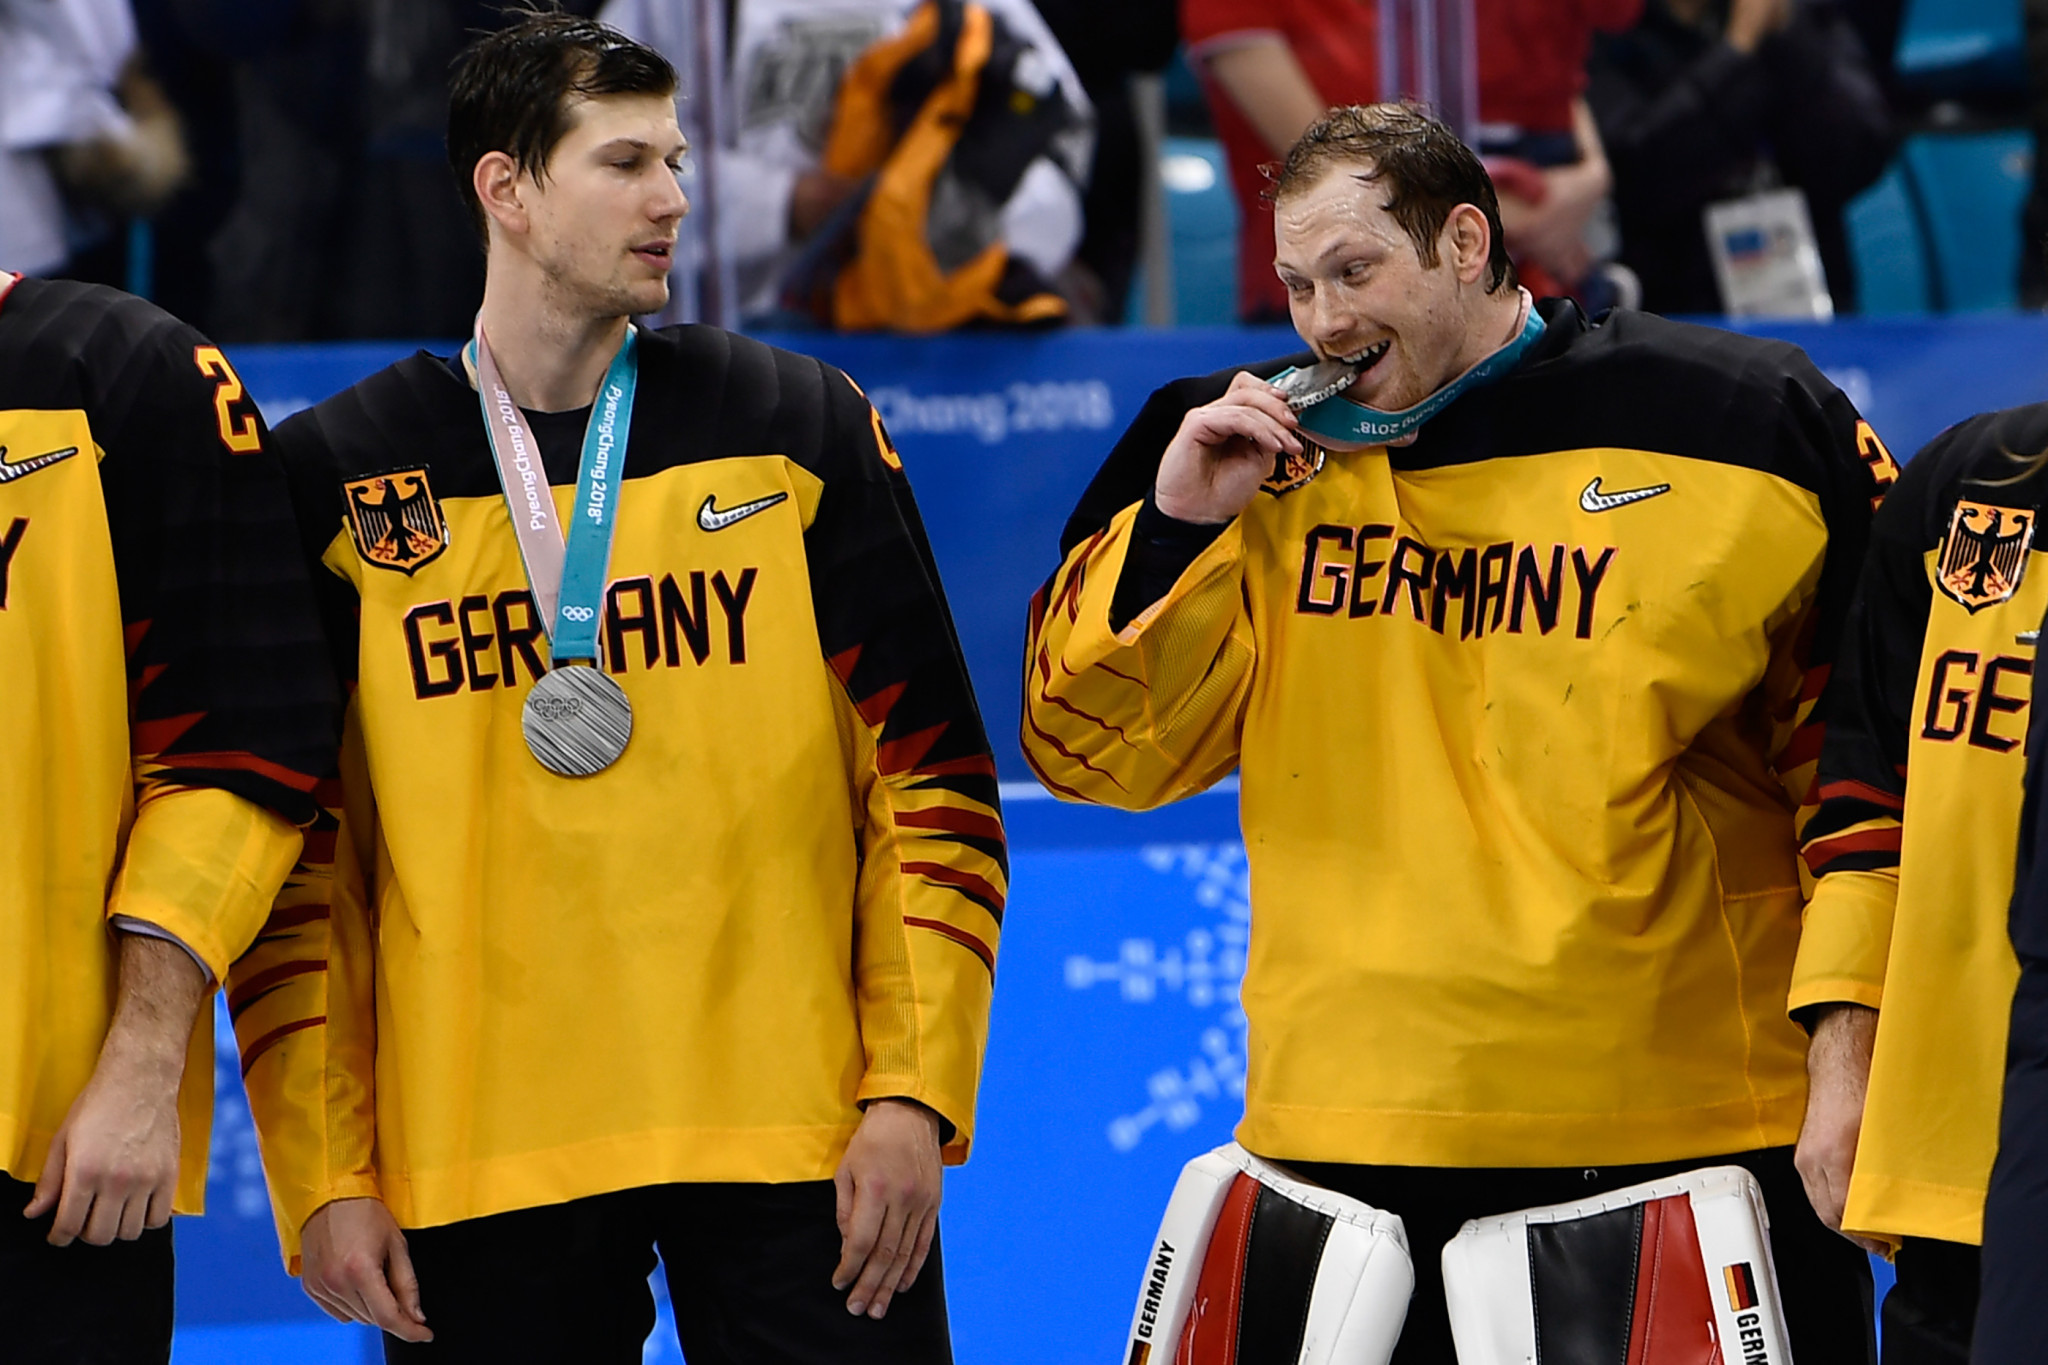 Germany won 31 medals at the Pyeongchang 2018 Winter Olympics ©Getty Images